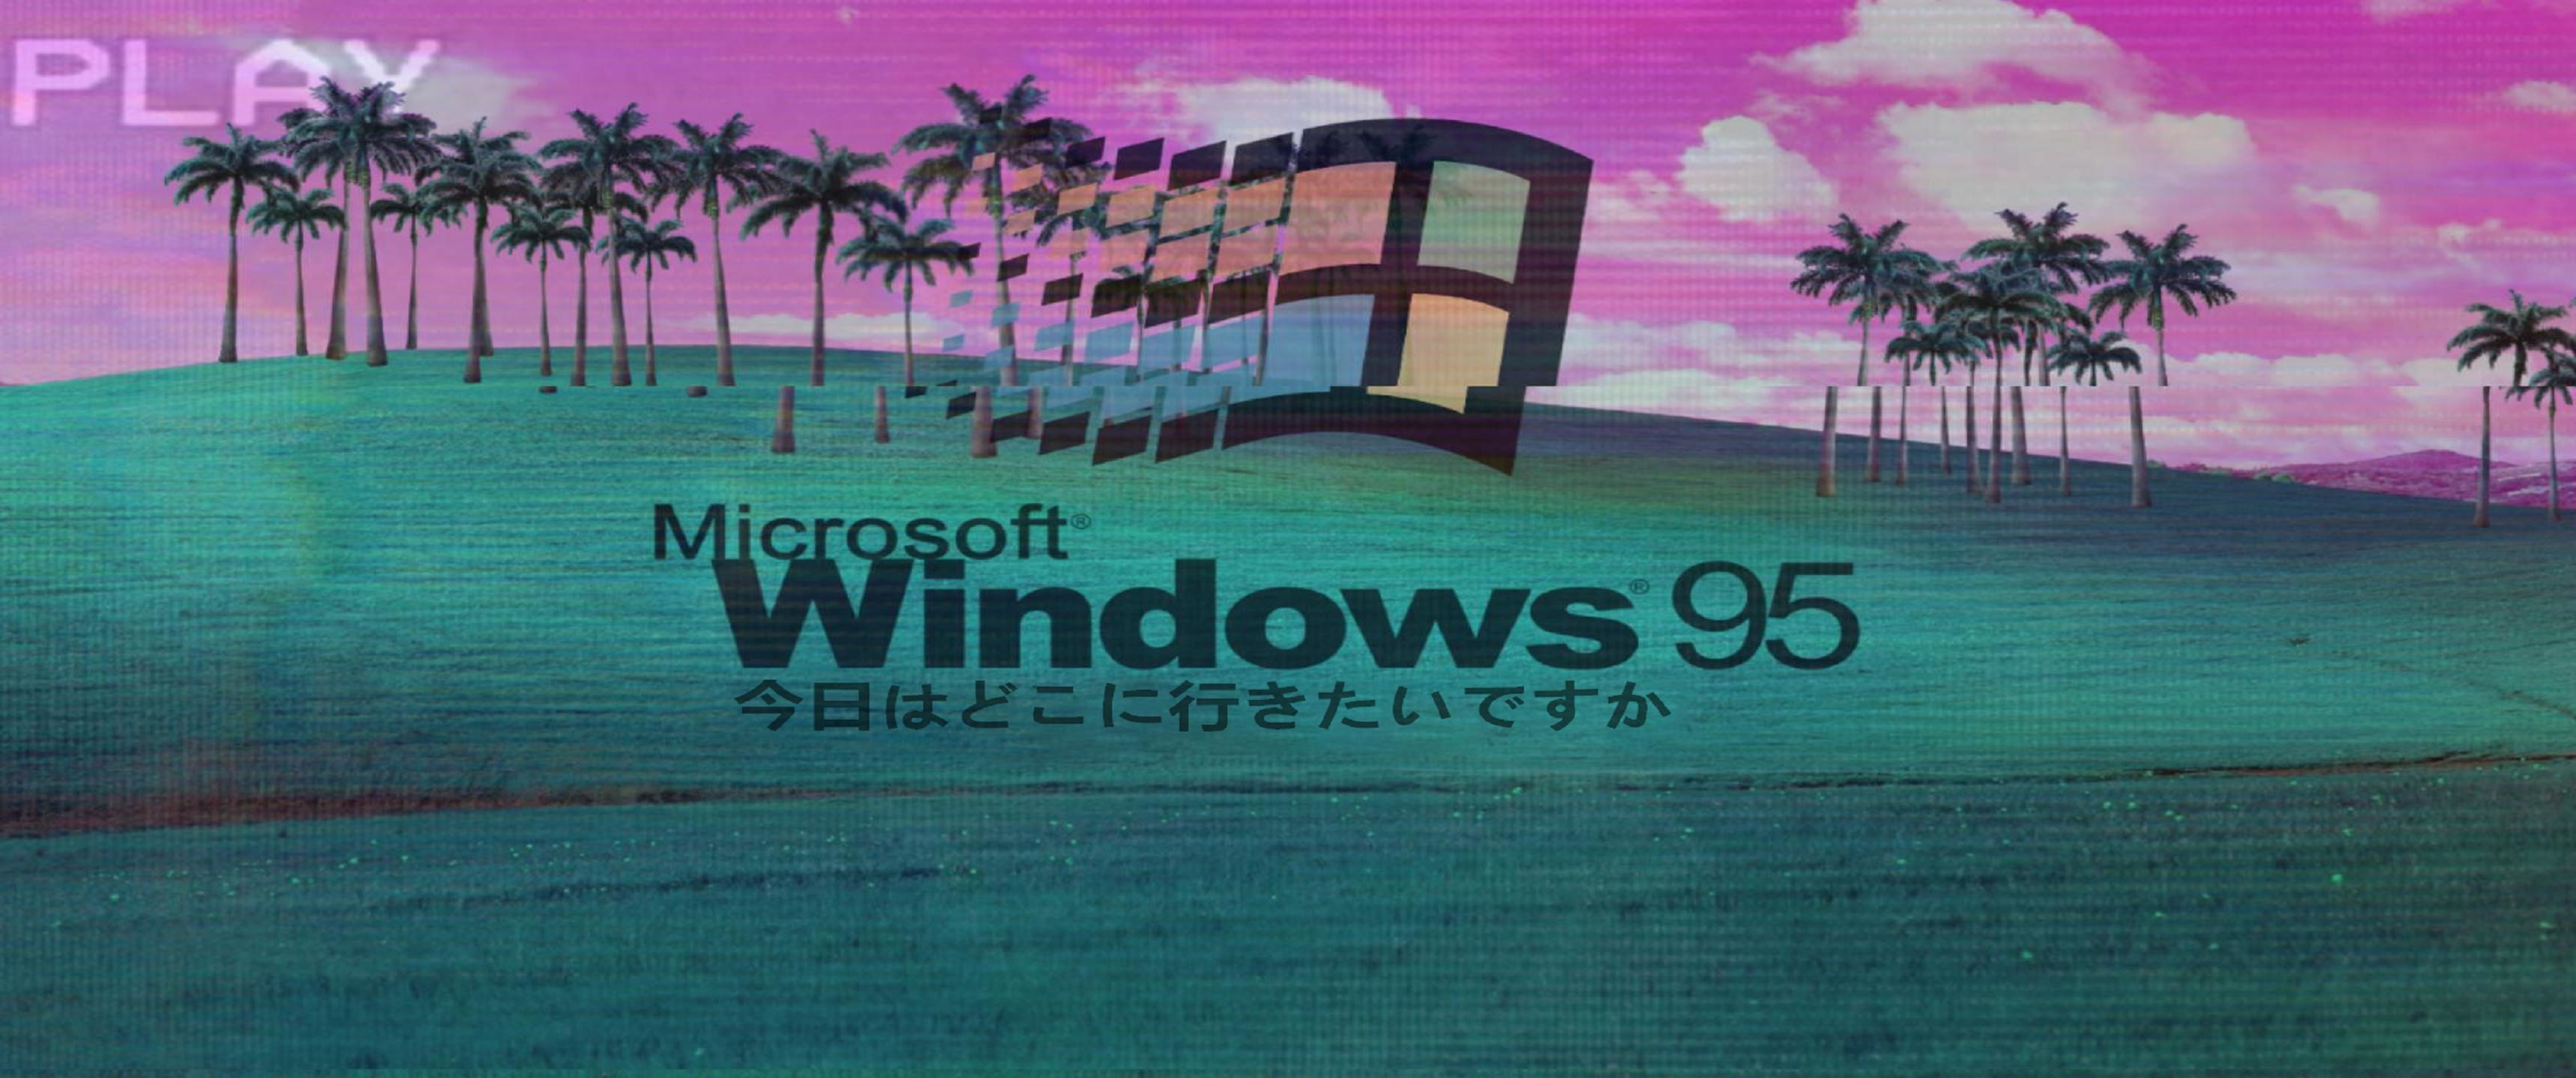 Res: 3440x1440, vaporwave windows theme